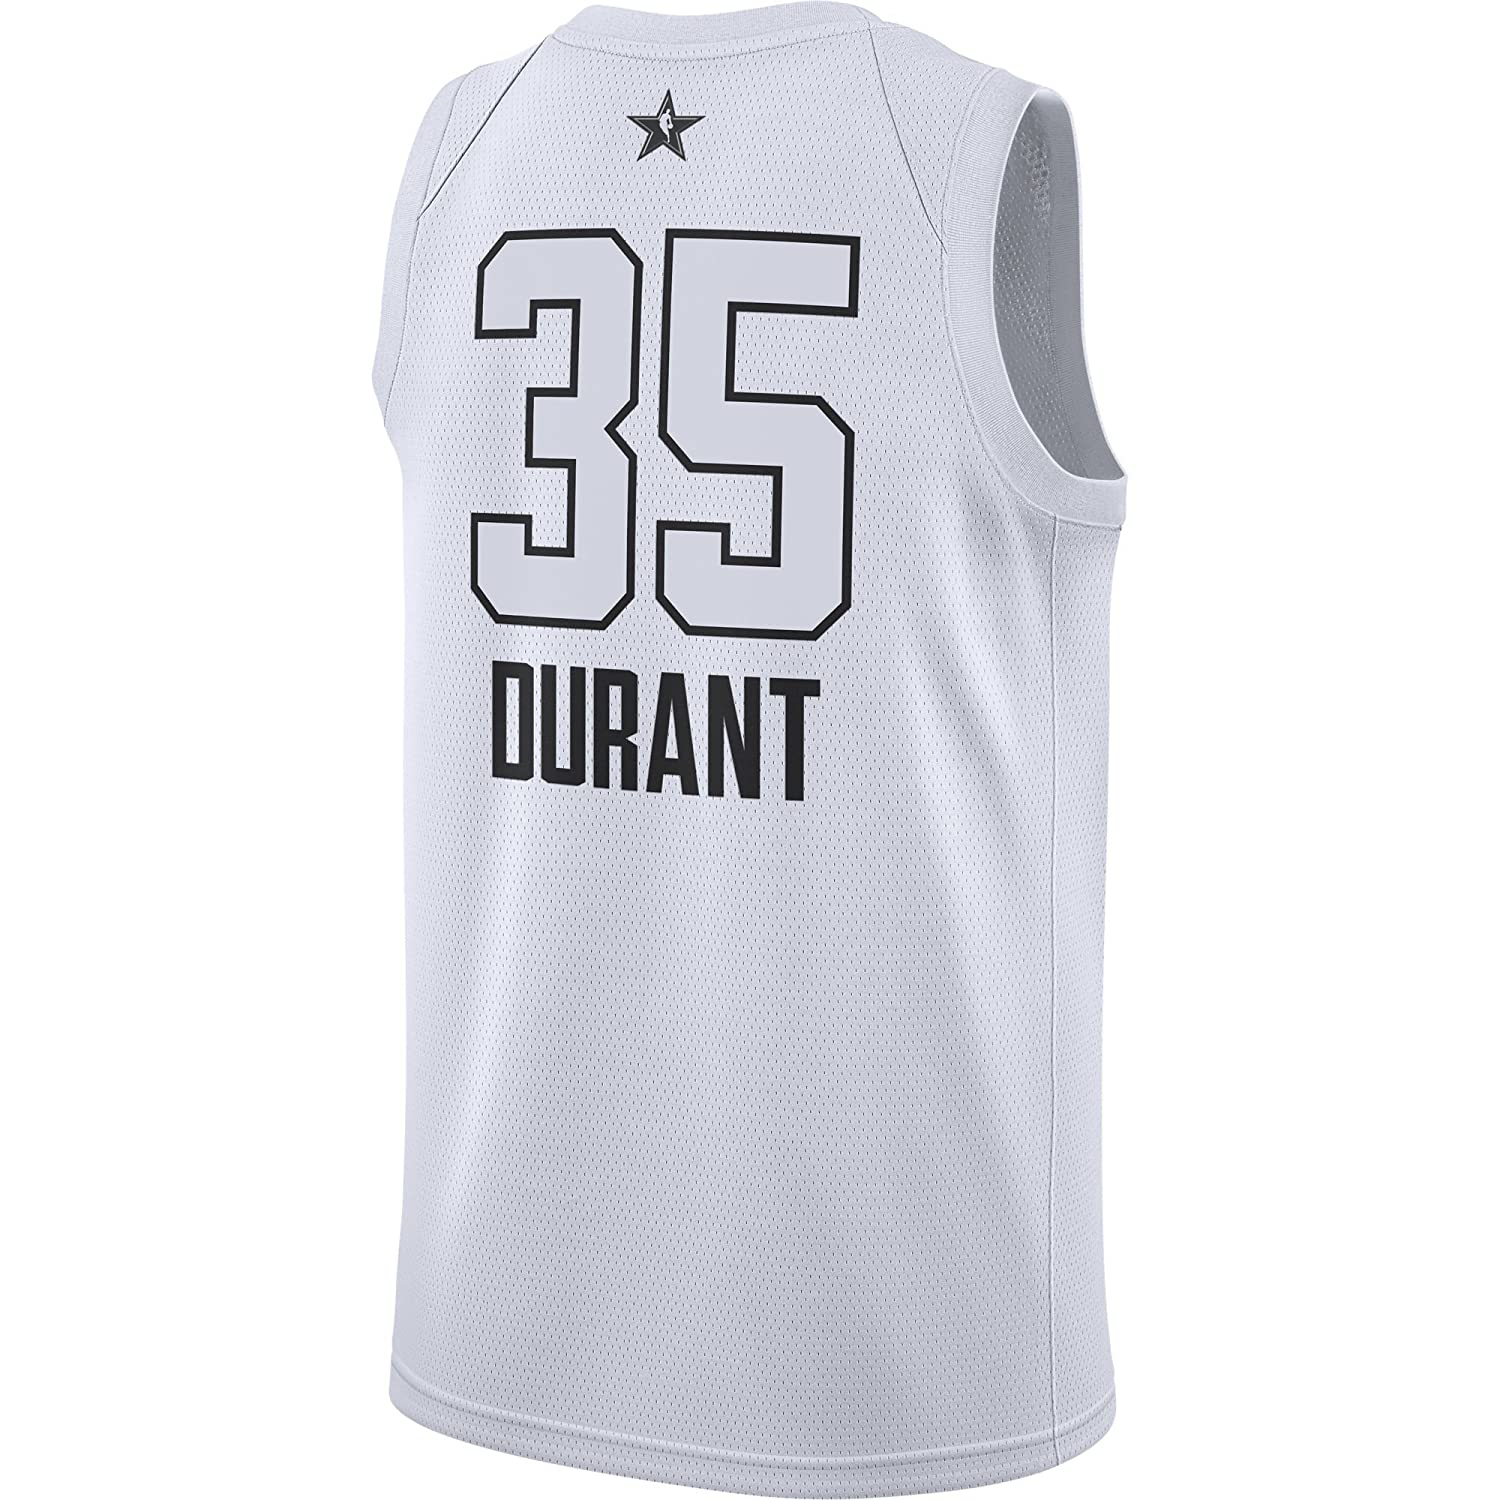 75c55ffb439 Amazon.com: Jordan Brand Kevin Durant Golden State Warriors White 2018 All-Star  Game Swingman Jersey - Men's Medium: Clothing